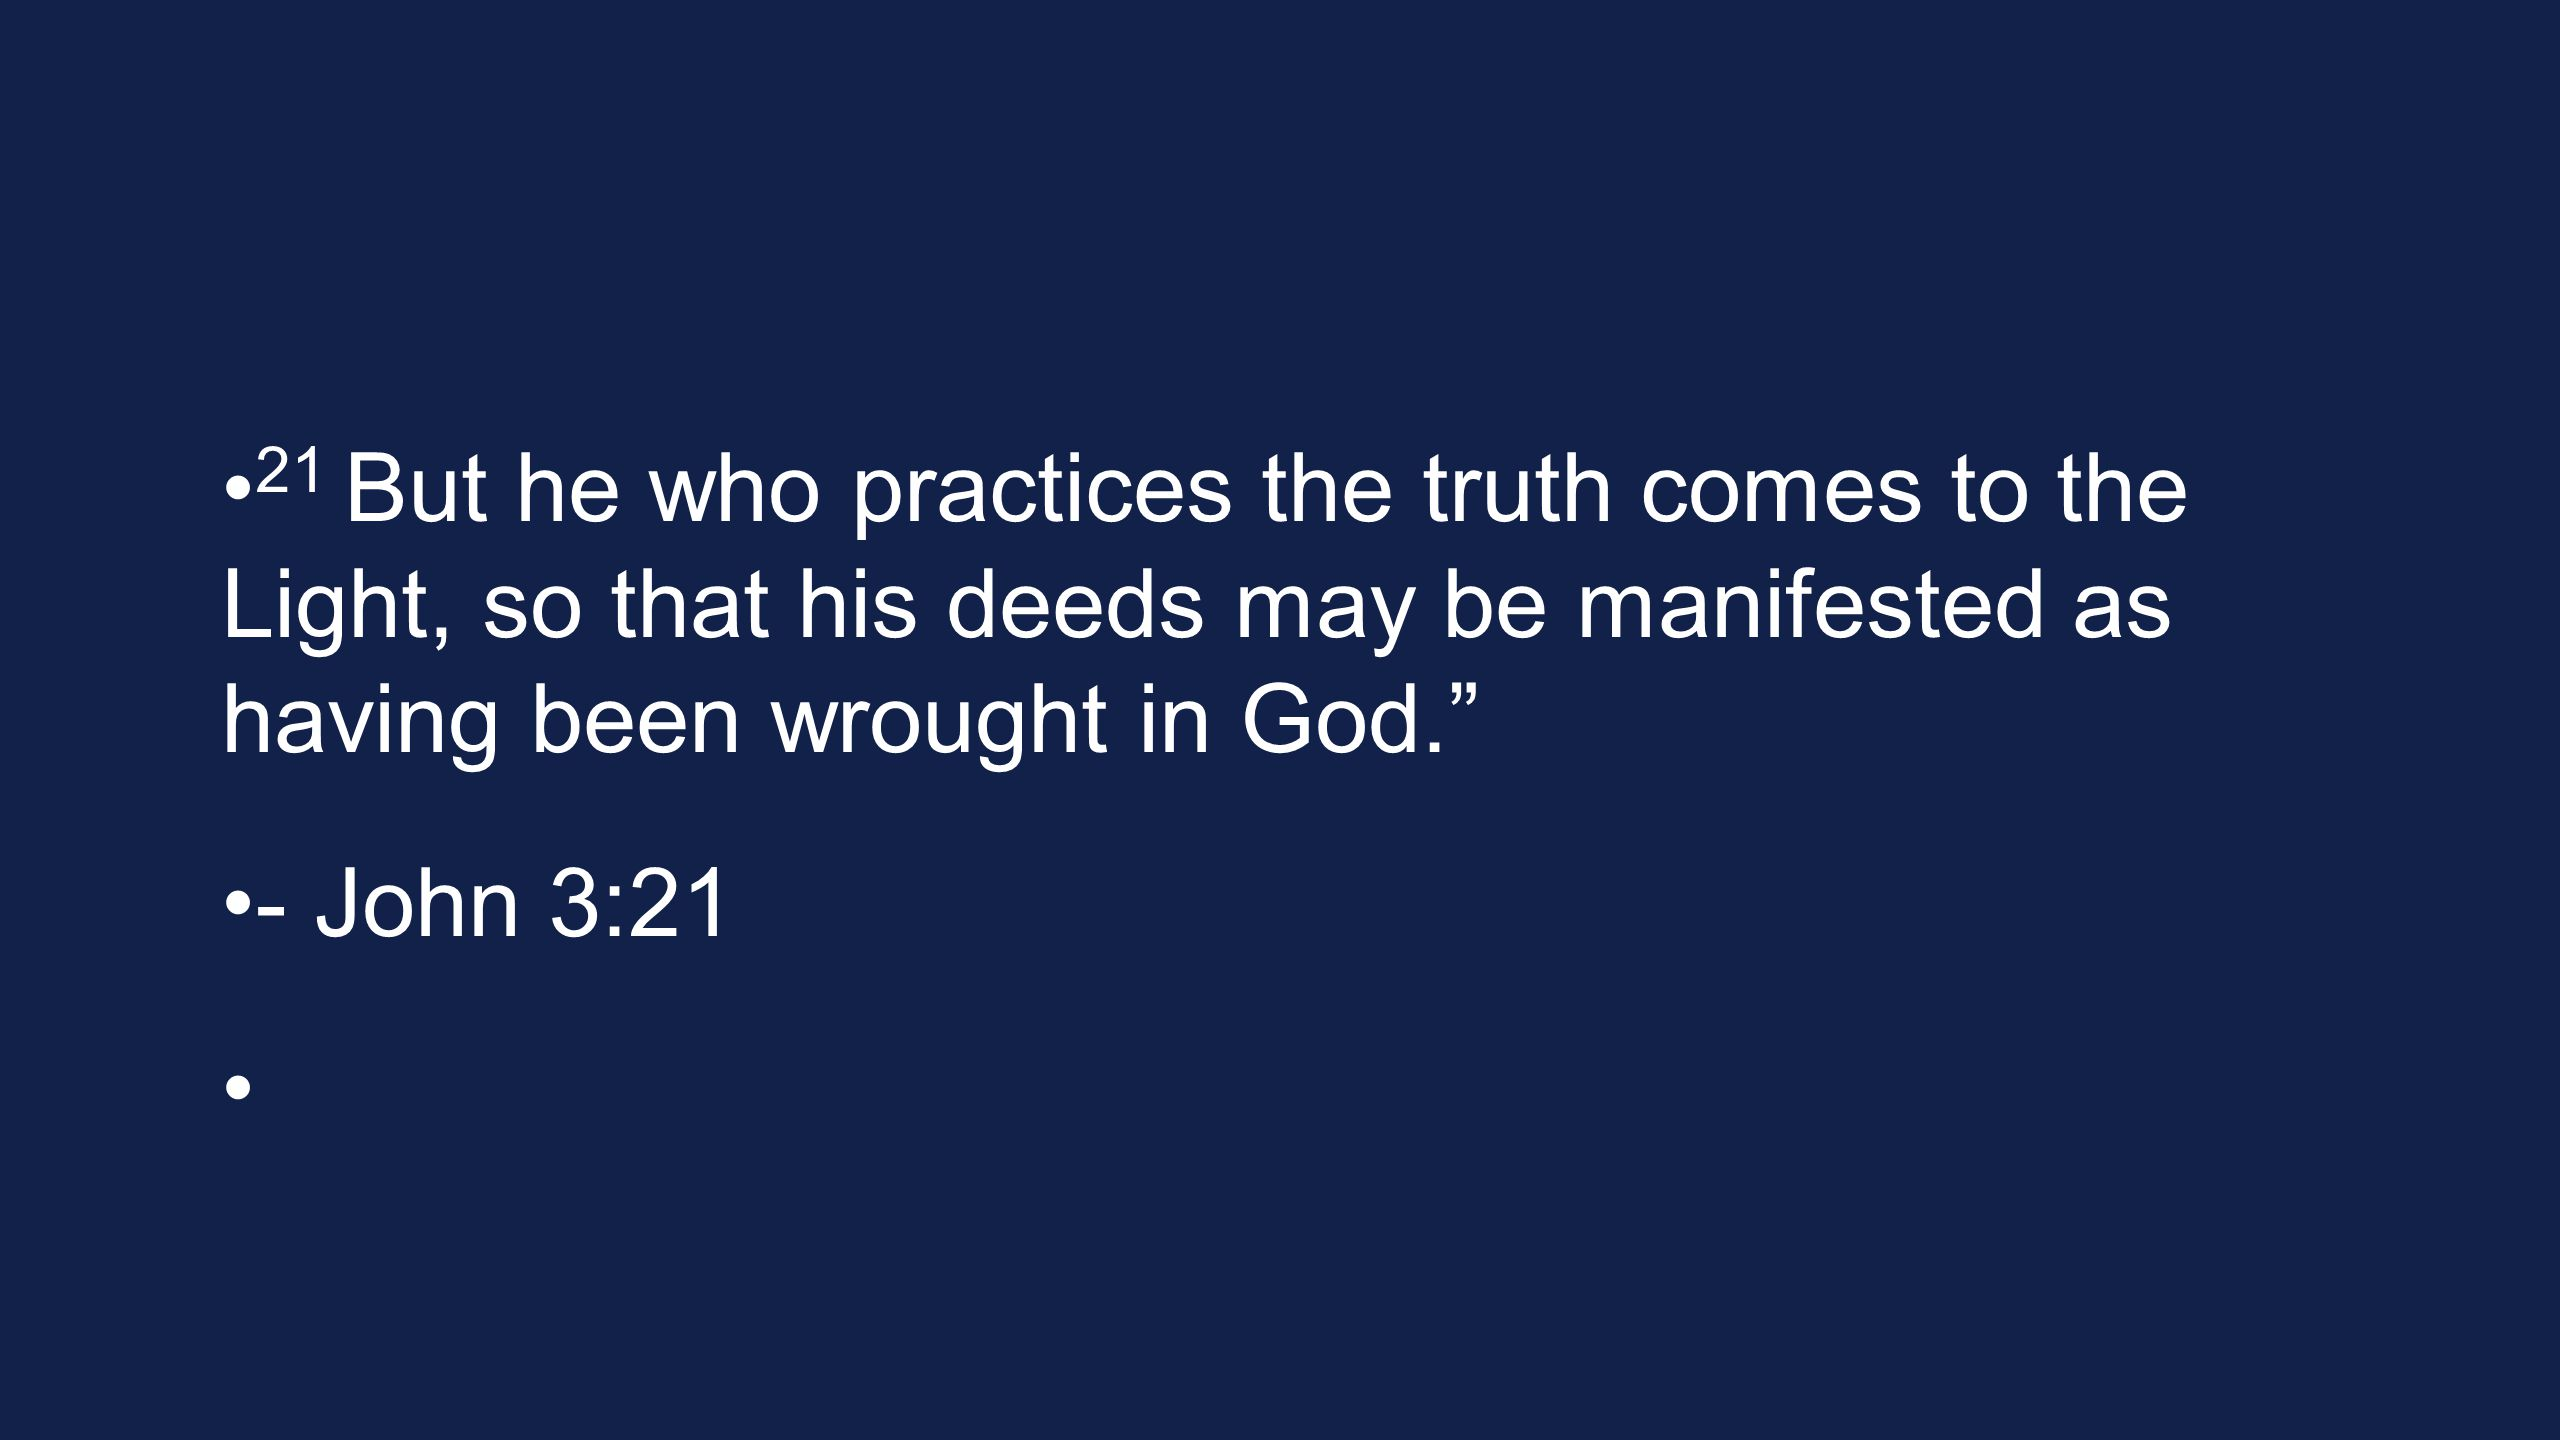 21 But he who practices the truth comes to the Light, so that his deeds may be manifested as having been wrought in God. - John 3:21